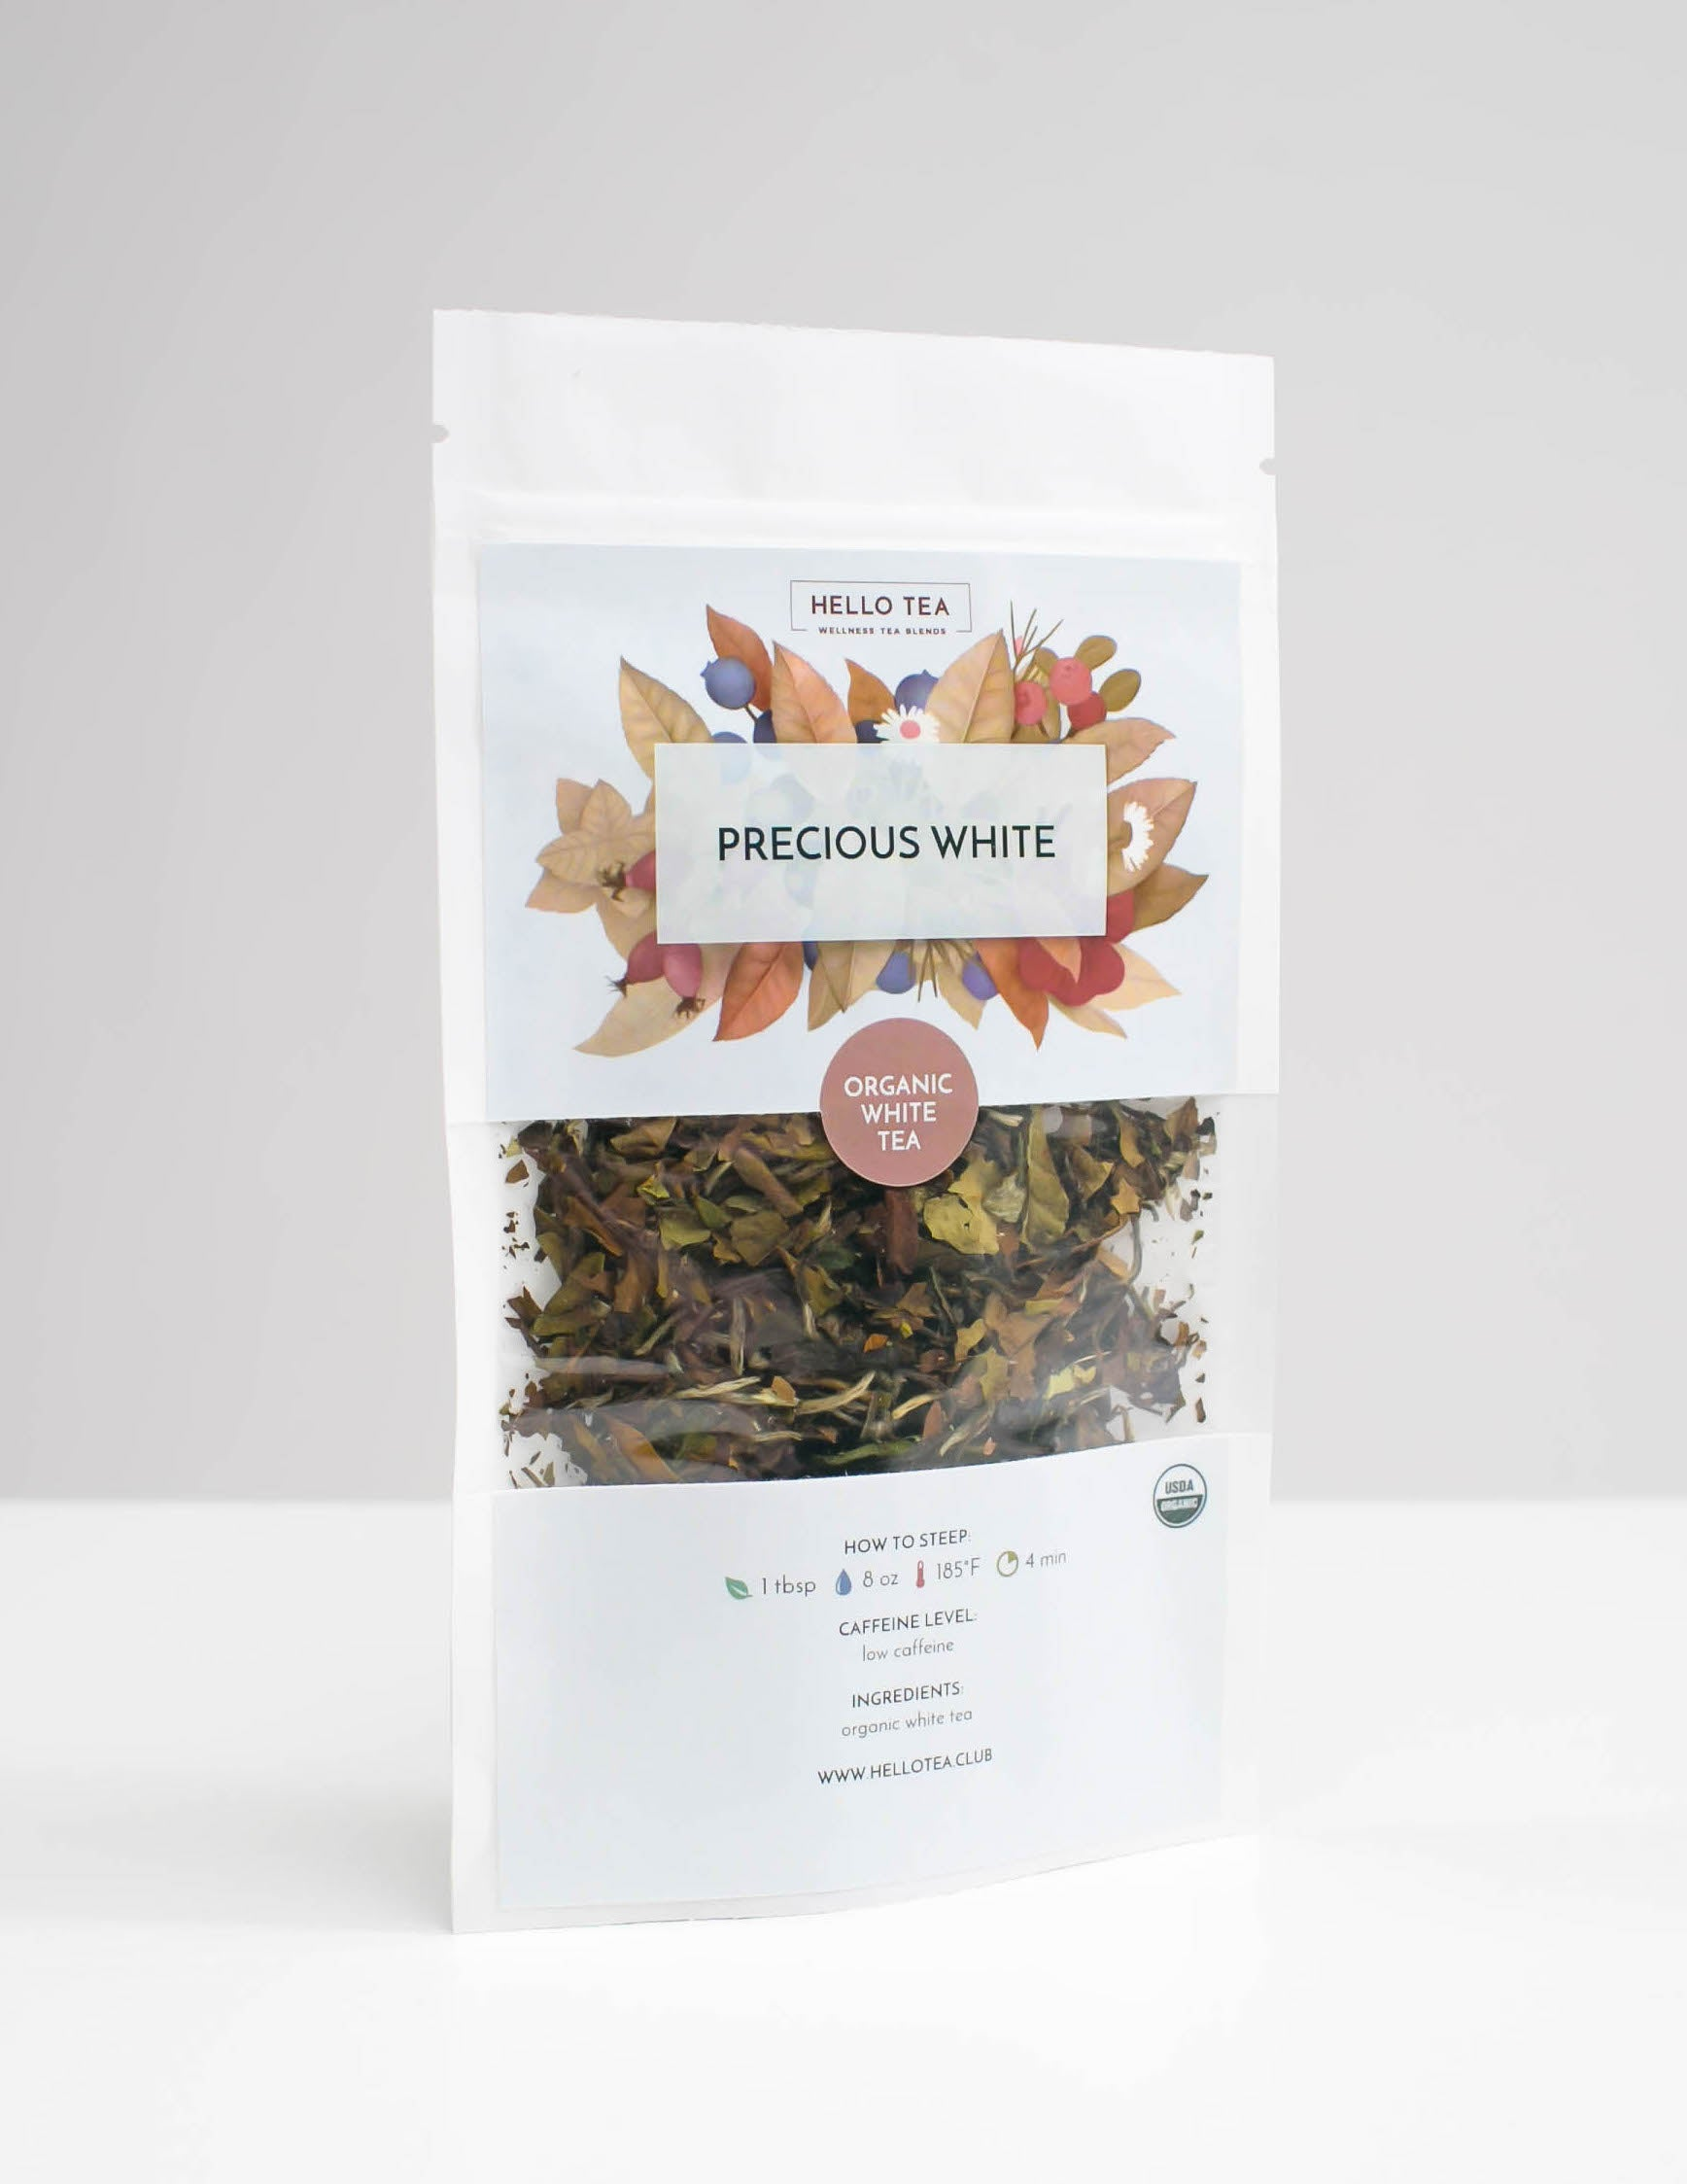 Stand up pouch of Hello Tea Precious White Loose Leaf Tea